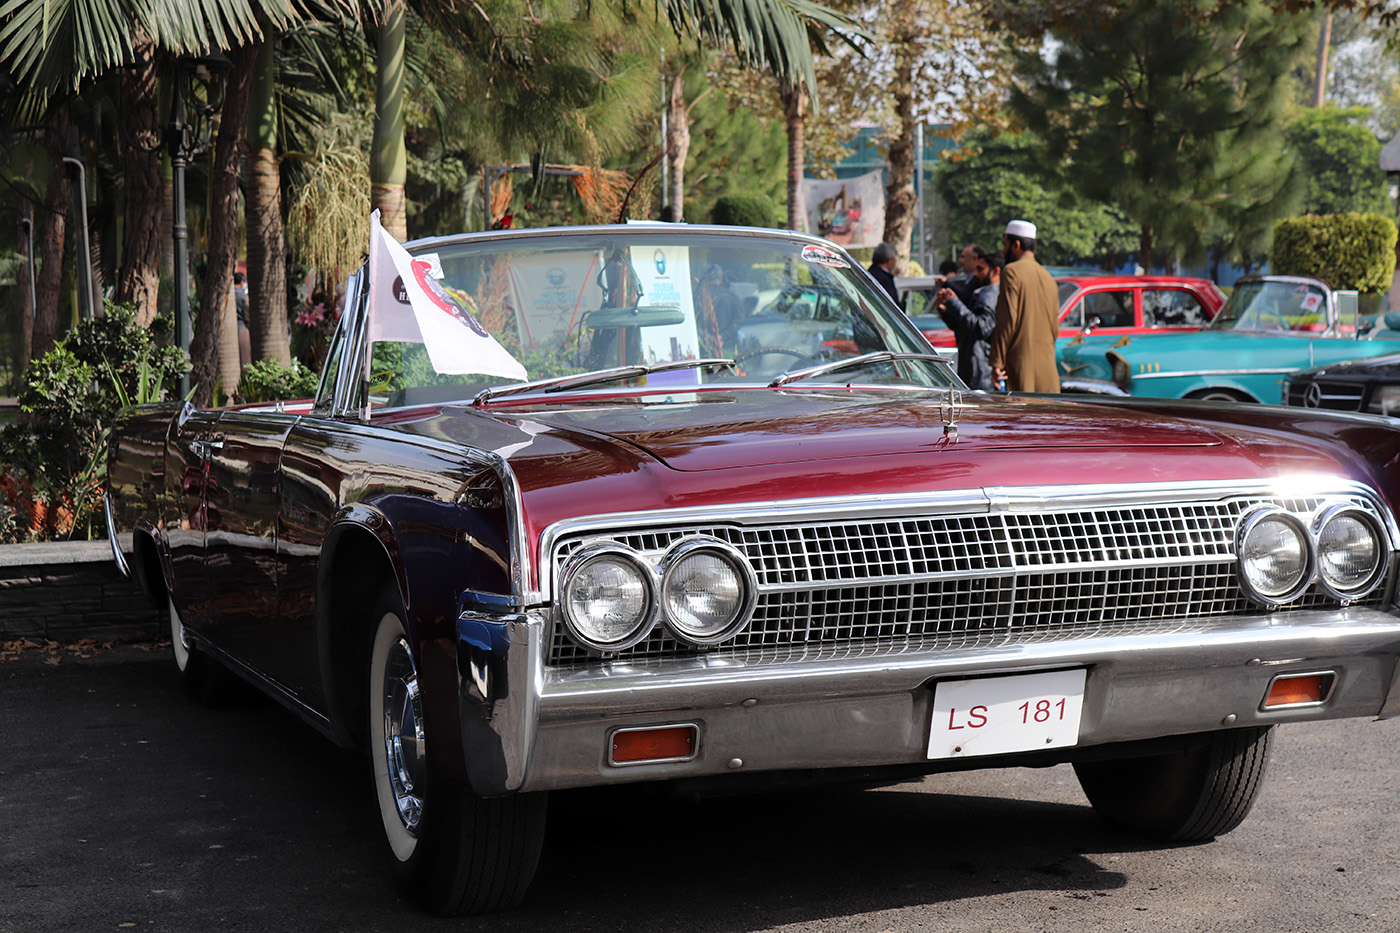 Pakistan S Classic Car Lovers Gear Up For Cross Country Vintage Rally Arab News Pk